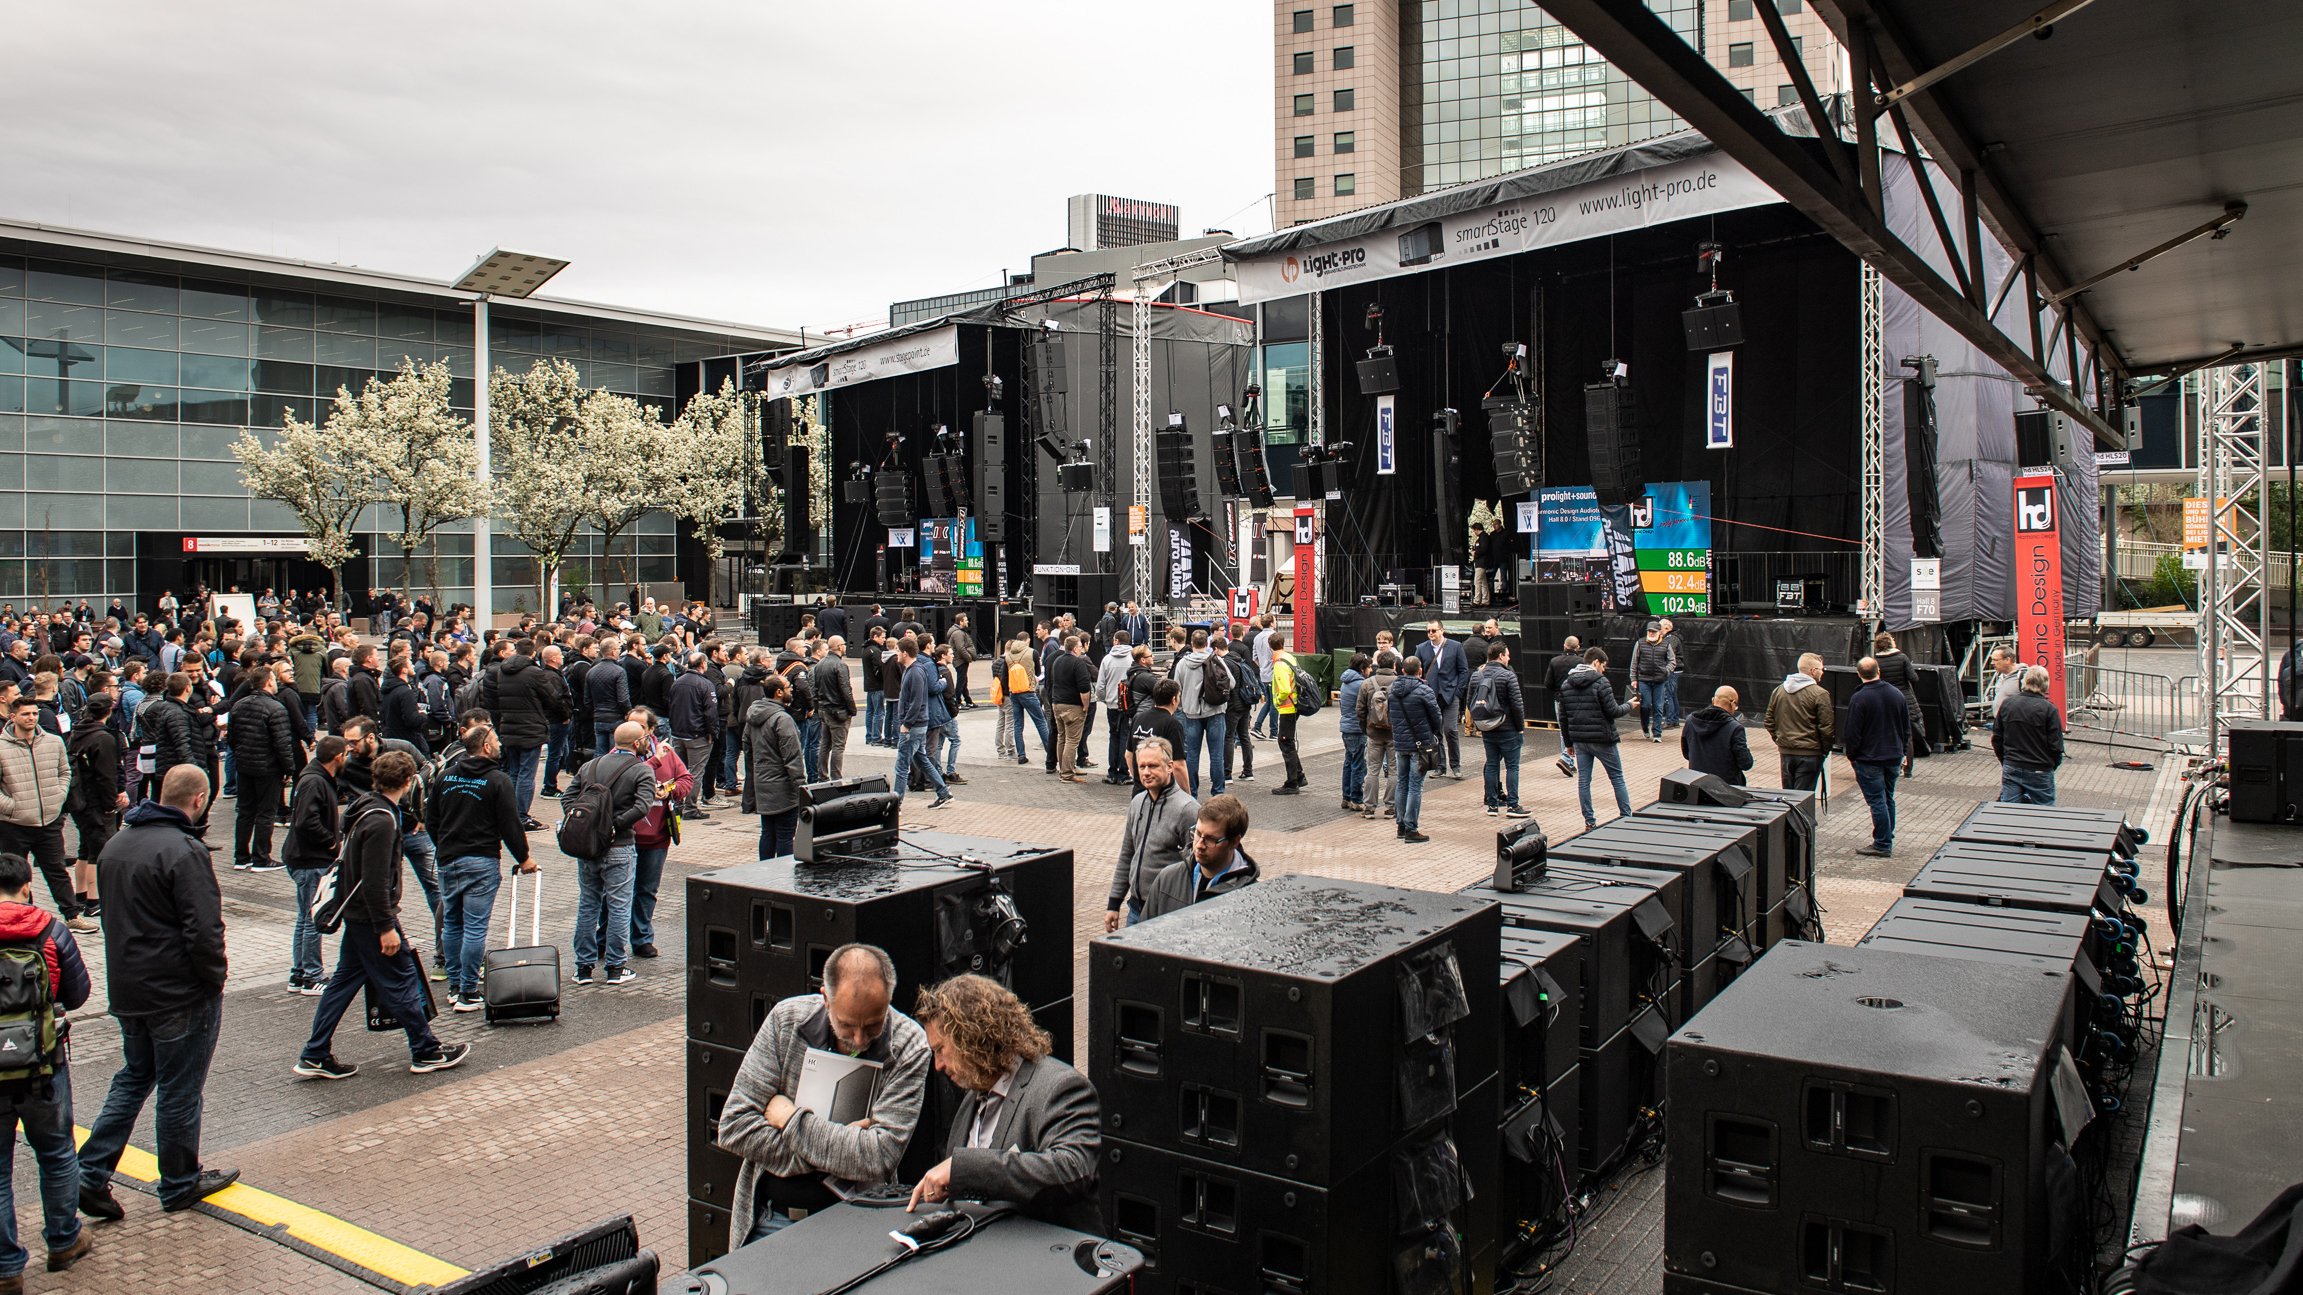 Live Sound Arena at the exhibition grounds of Messe Frankfurt | Prolight + Sound